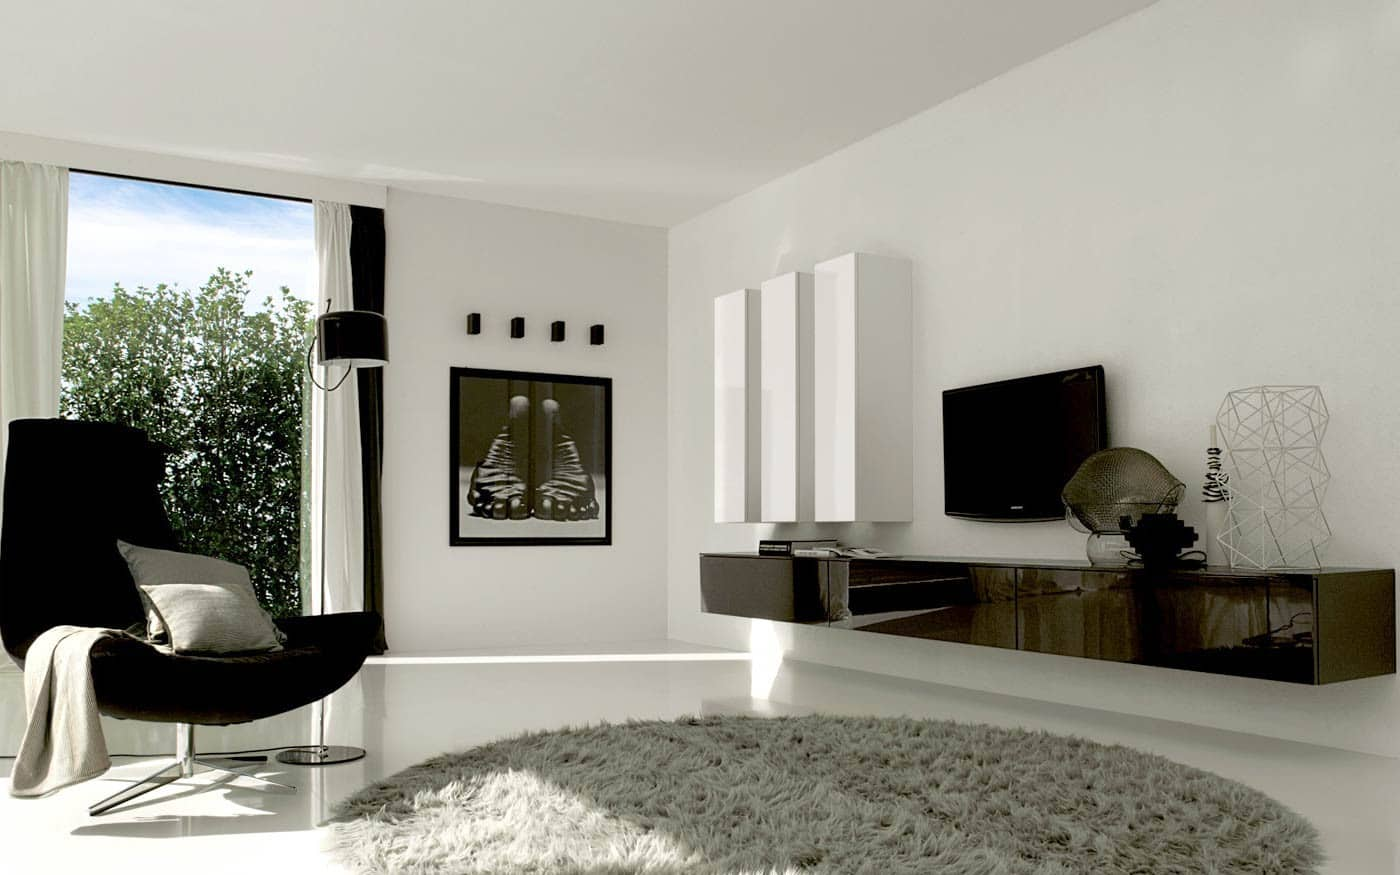 lowboard h ngend glas interessante ideen f r die gestaltung eines raumes in ihrem. Black Bedroom Furniture Sets. Home Design Ideas